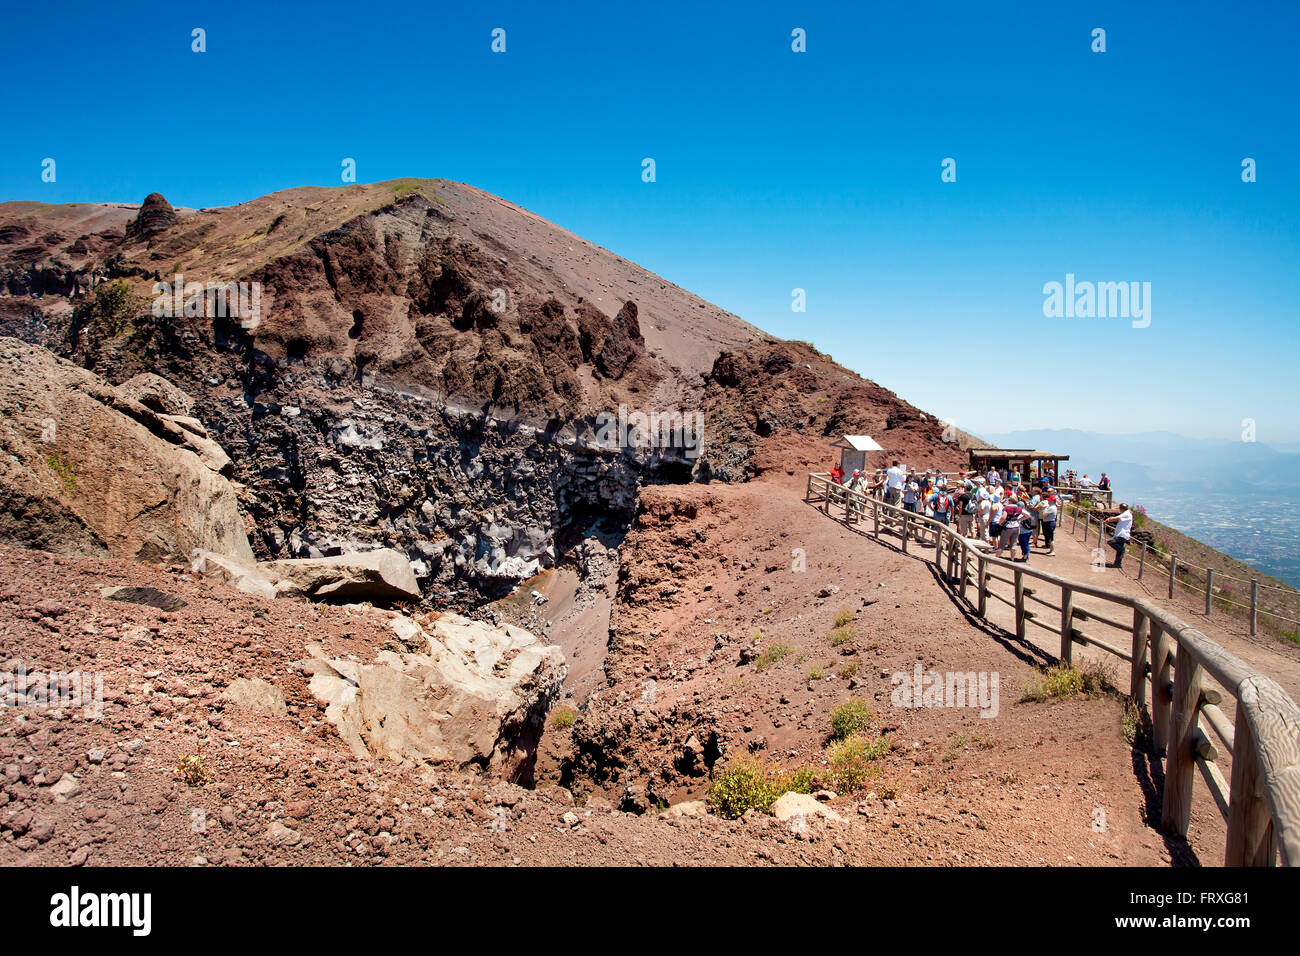 View in the crater of Vesuvius, Naples, Bay of Naples, Campania, Italy - Stock Image